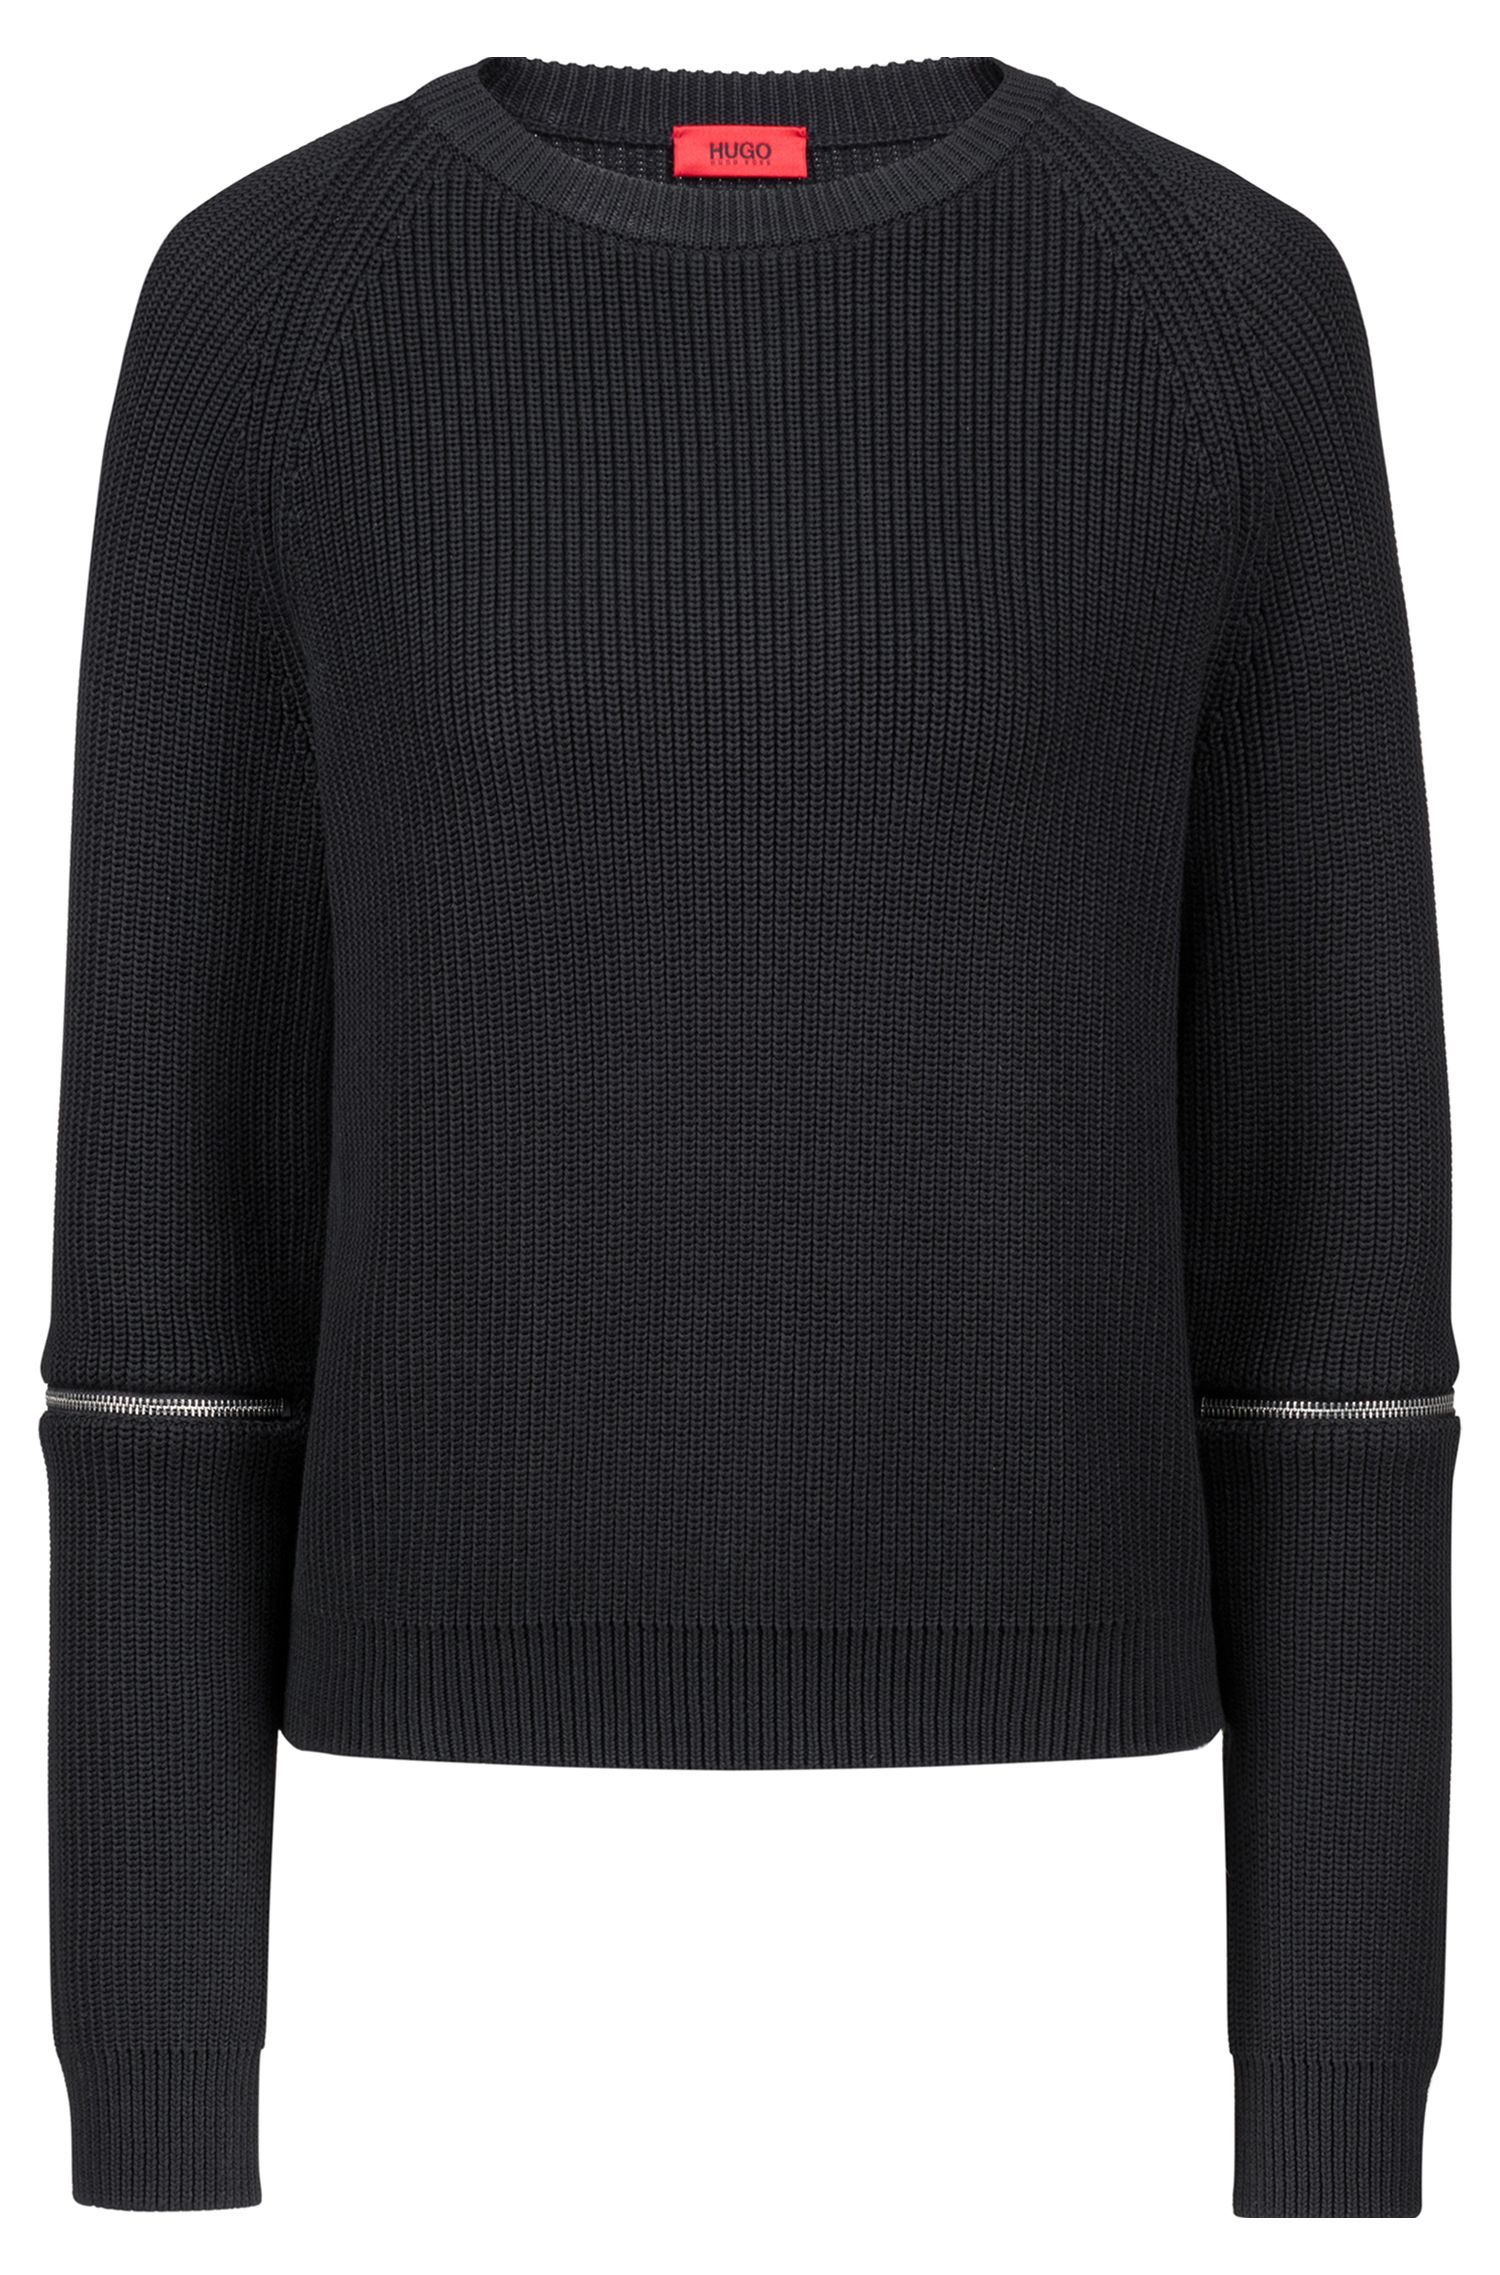 Cotton crew-neck sweater with zip detail, Black